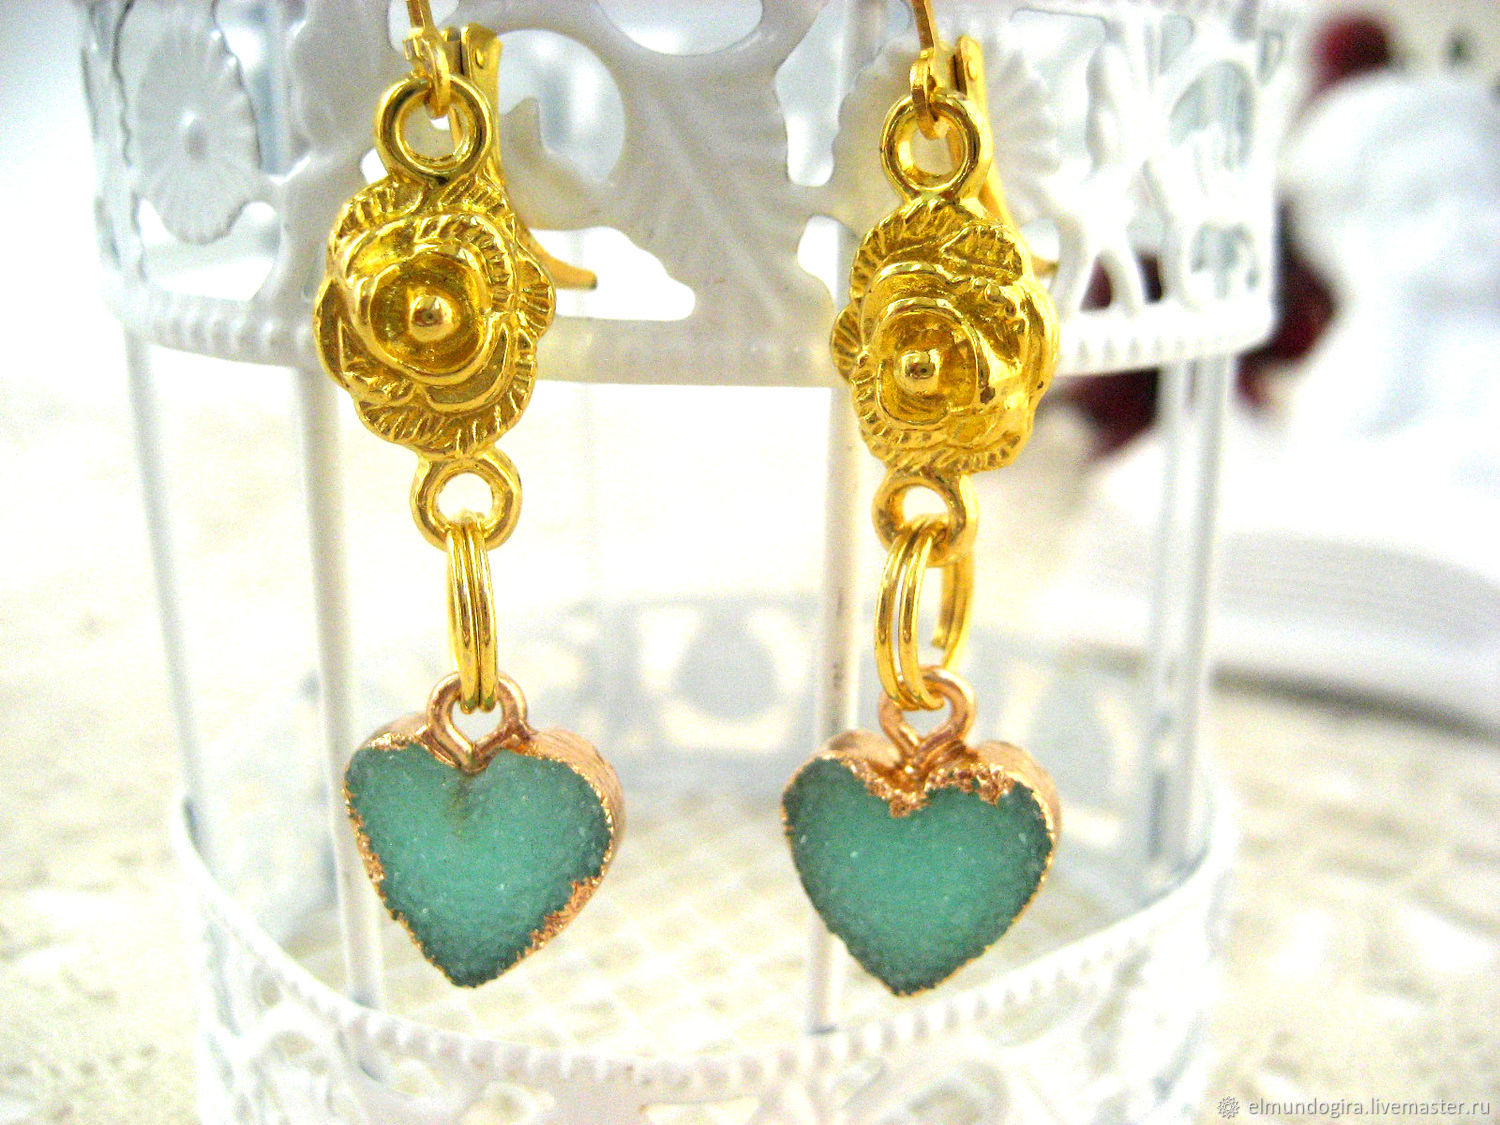 Heart earrings gilded with agate and bright roses, Earrings, Moscow,  Фото №1